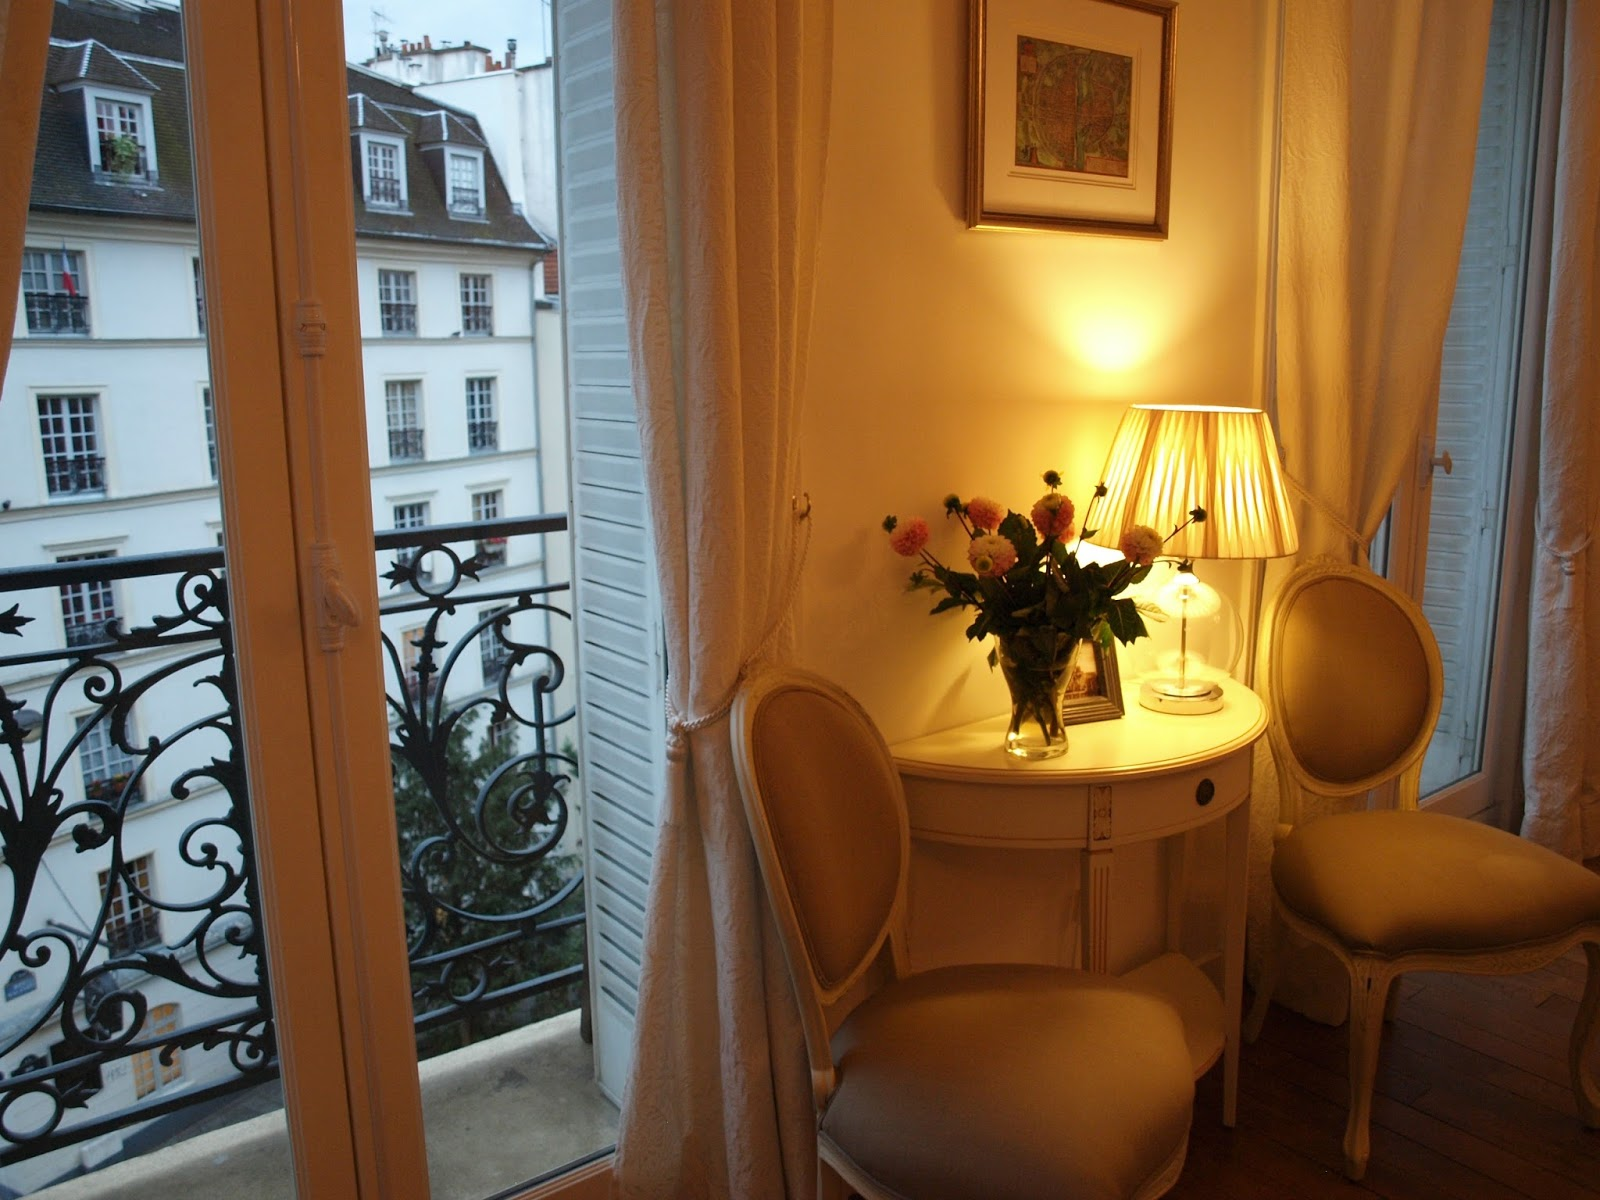 Home decor inspiration the paris apartment we rented for Home decor nearby